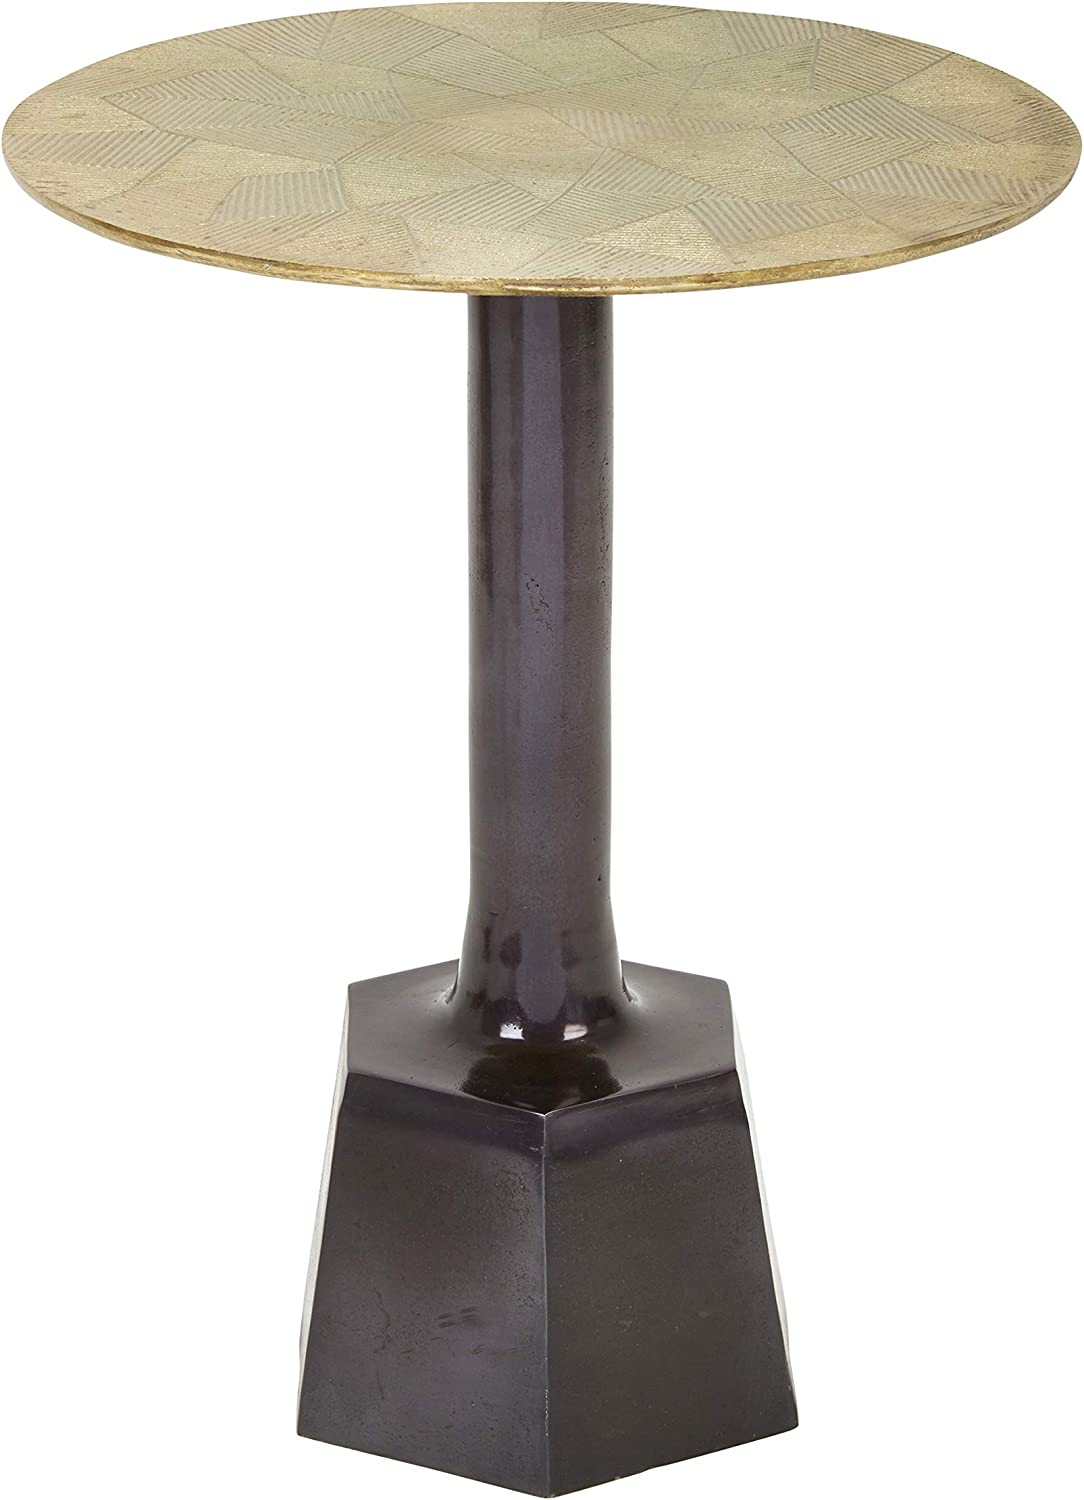 - Benjara Brown Aluminum Accent Table With Round Top And Hexagonal